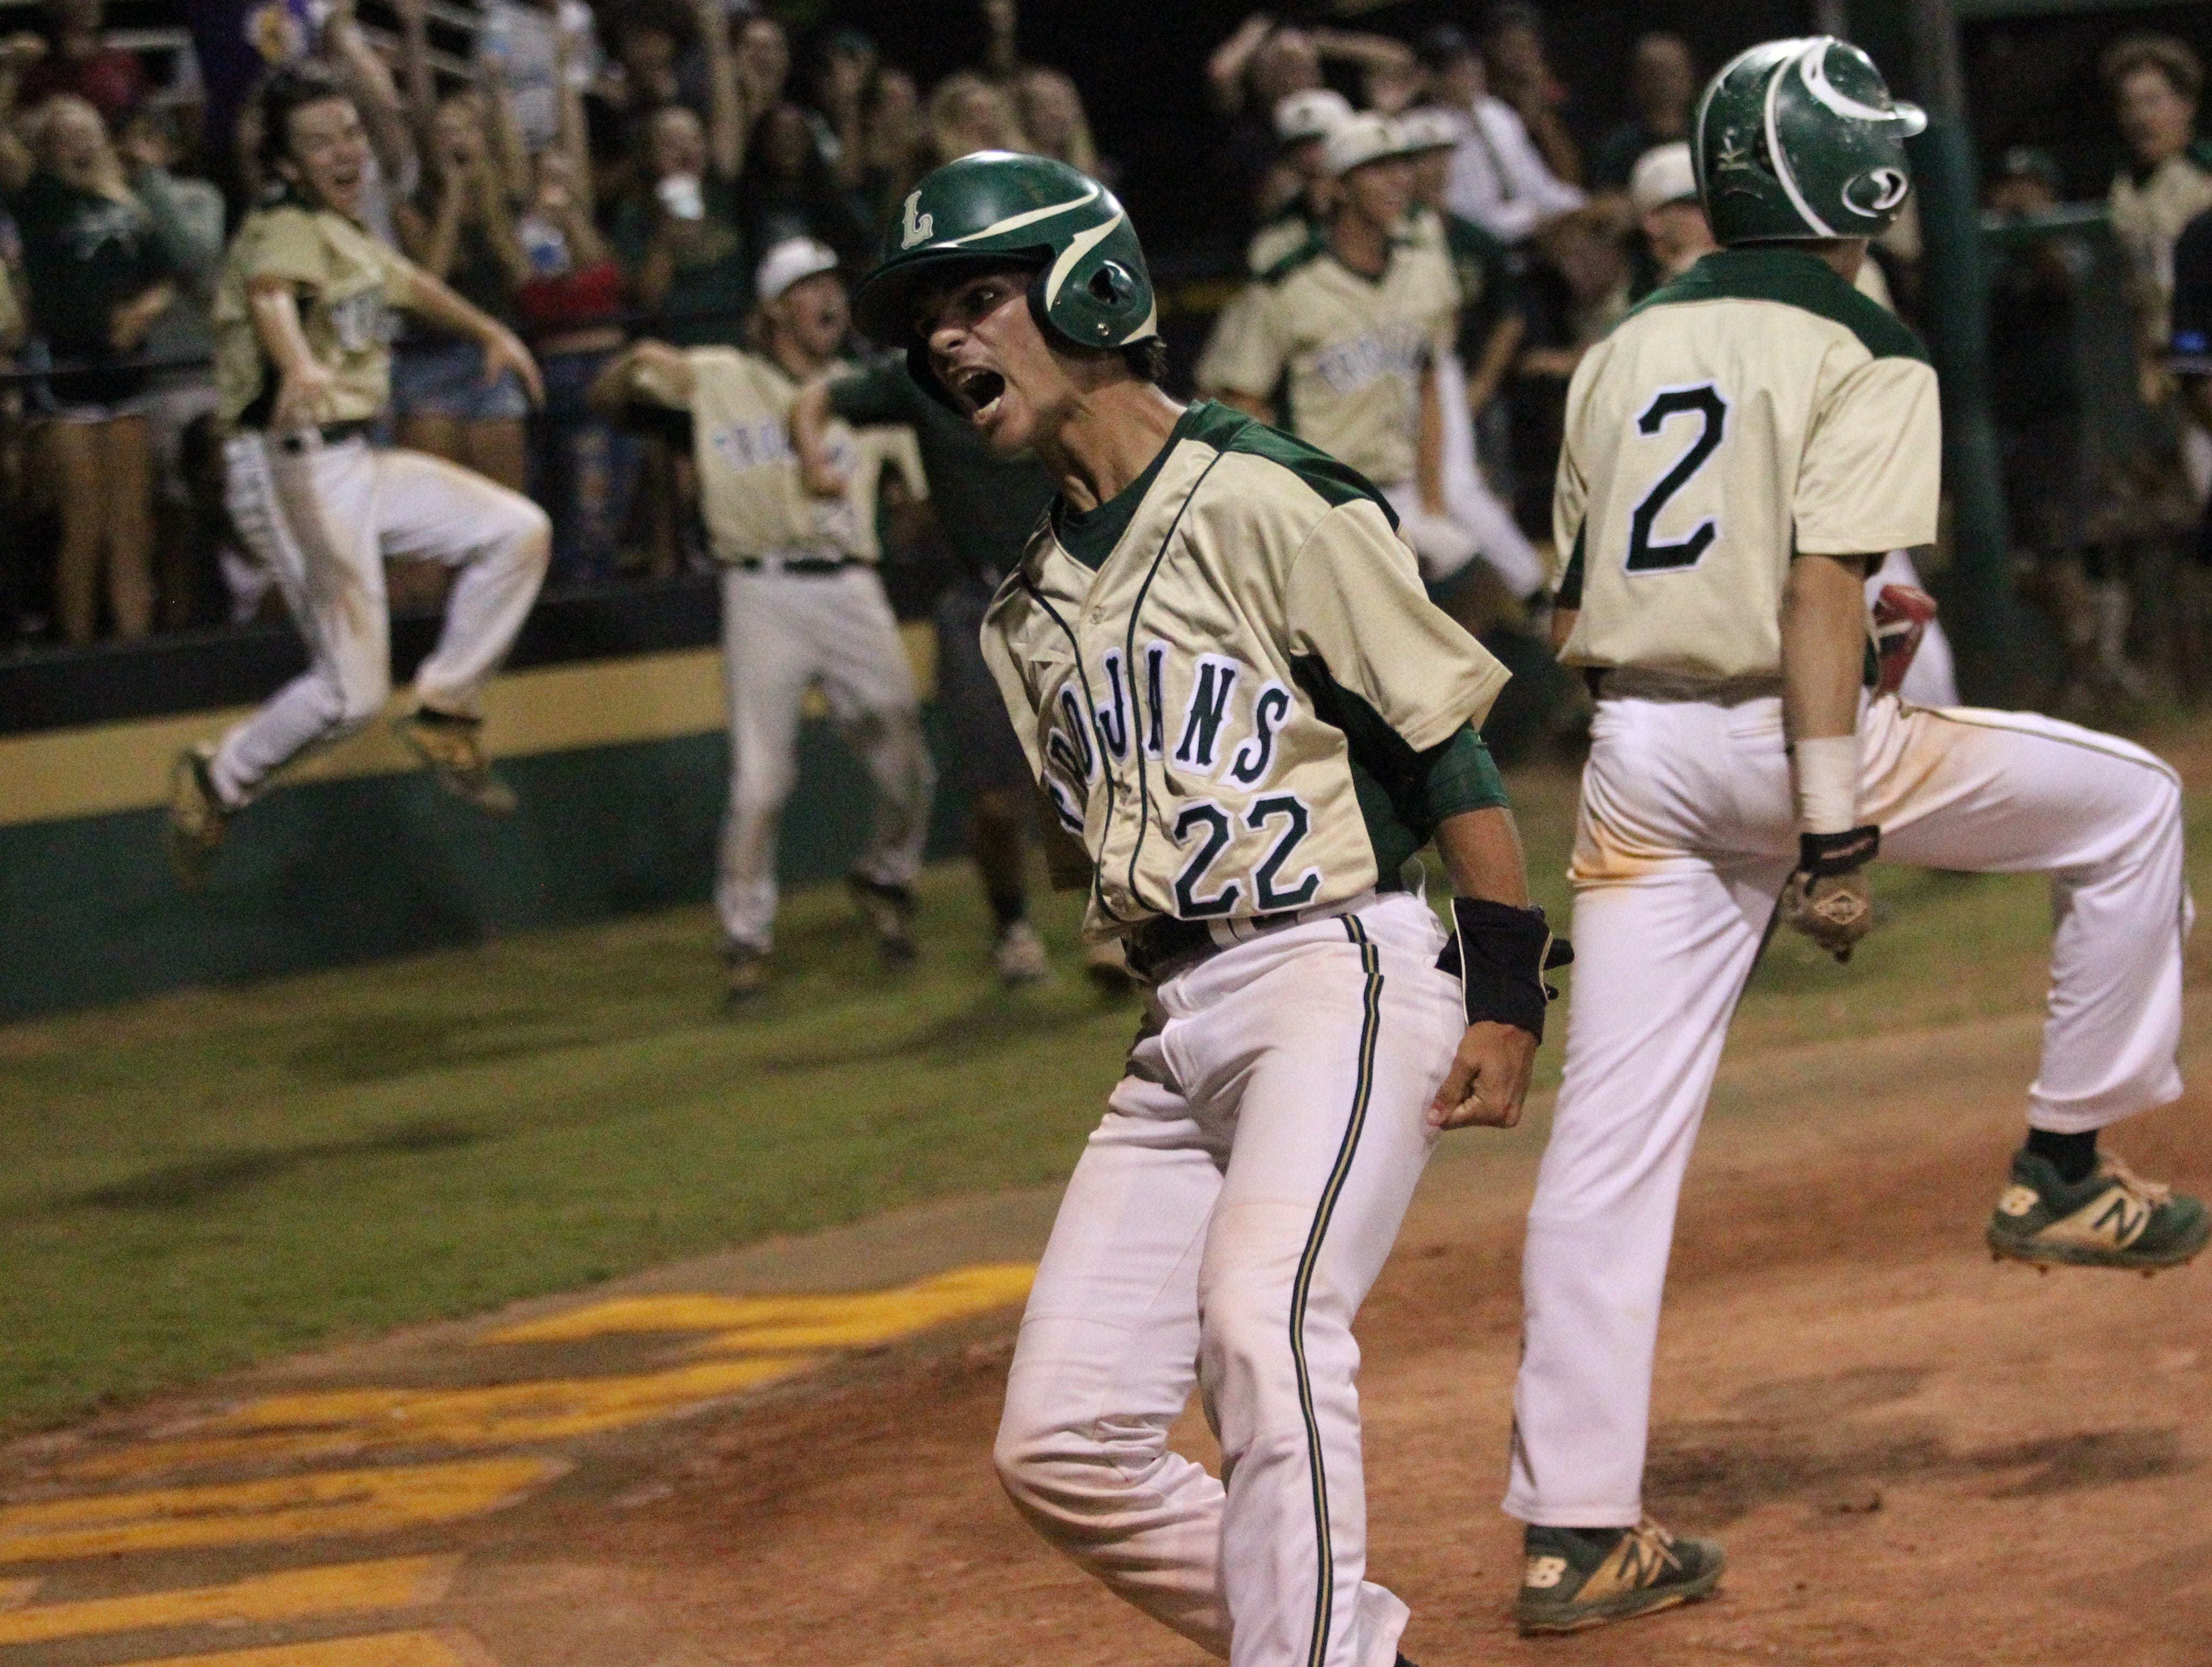 Lincoln's Connor Majors scores the game-tying run in the bottom of the seventh on an error as Lincoln baseball beat Chiles 5-4  in 10 innings during a District 2-8A championship game on Thursday, May 9, 2019.